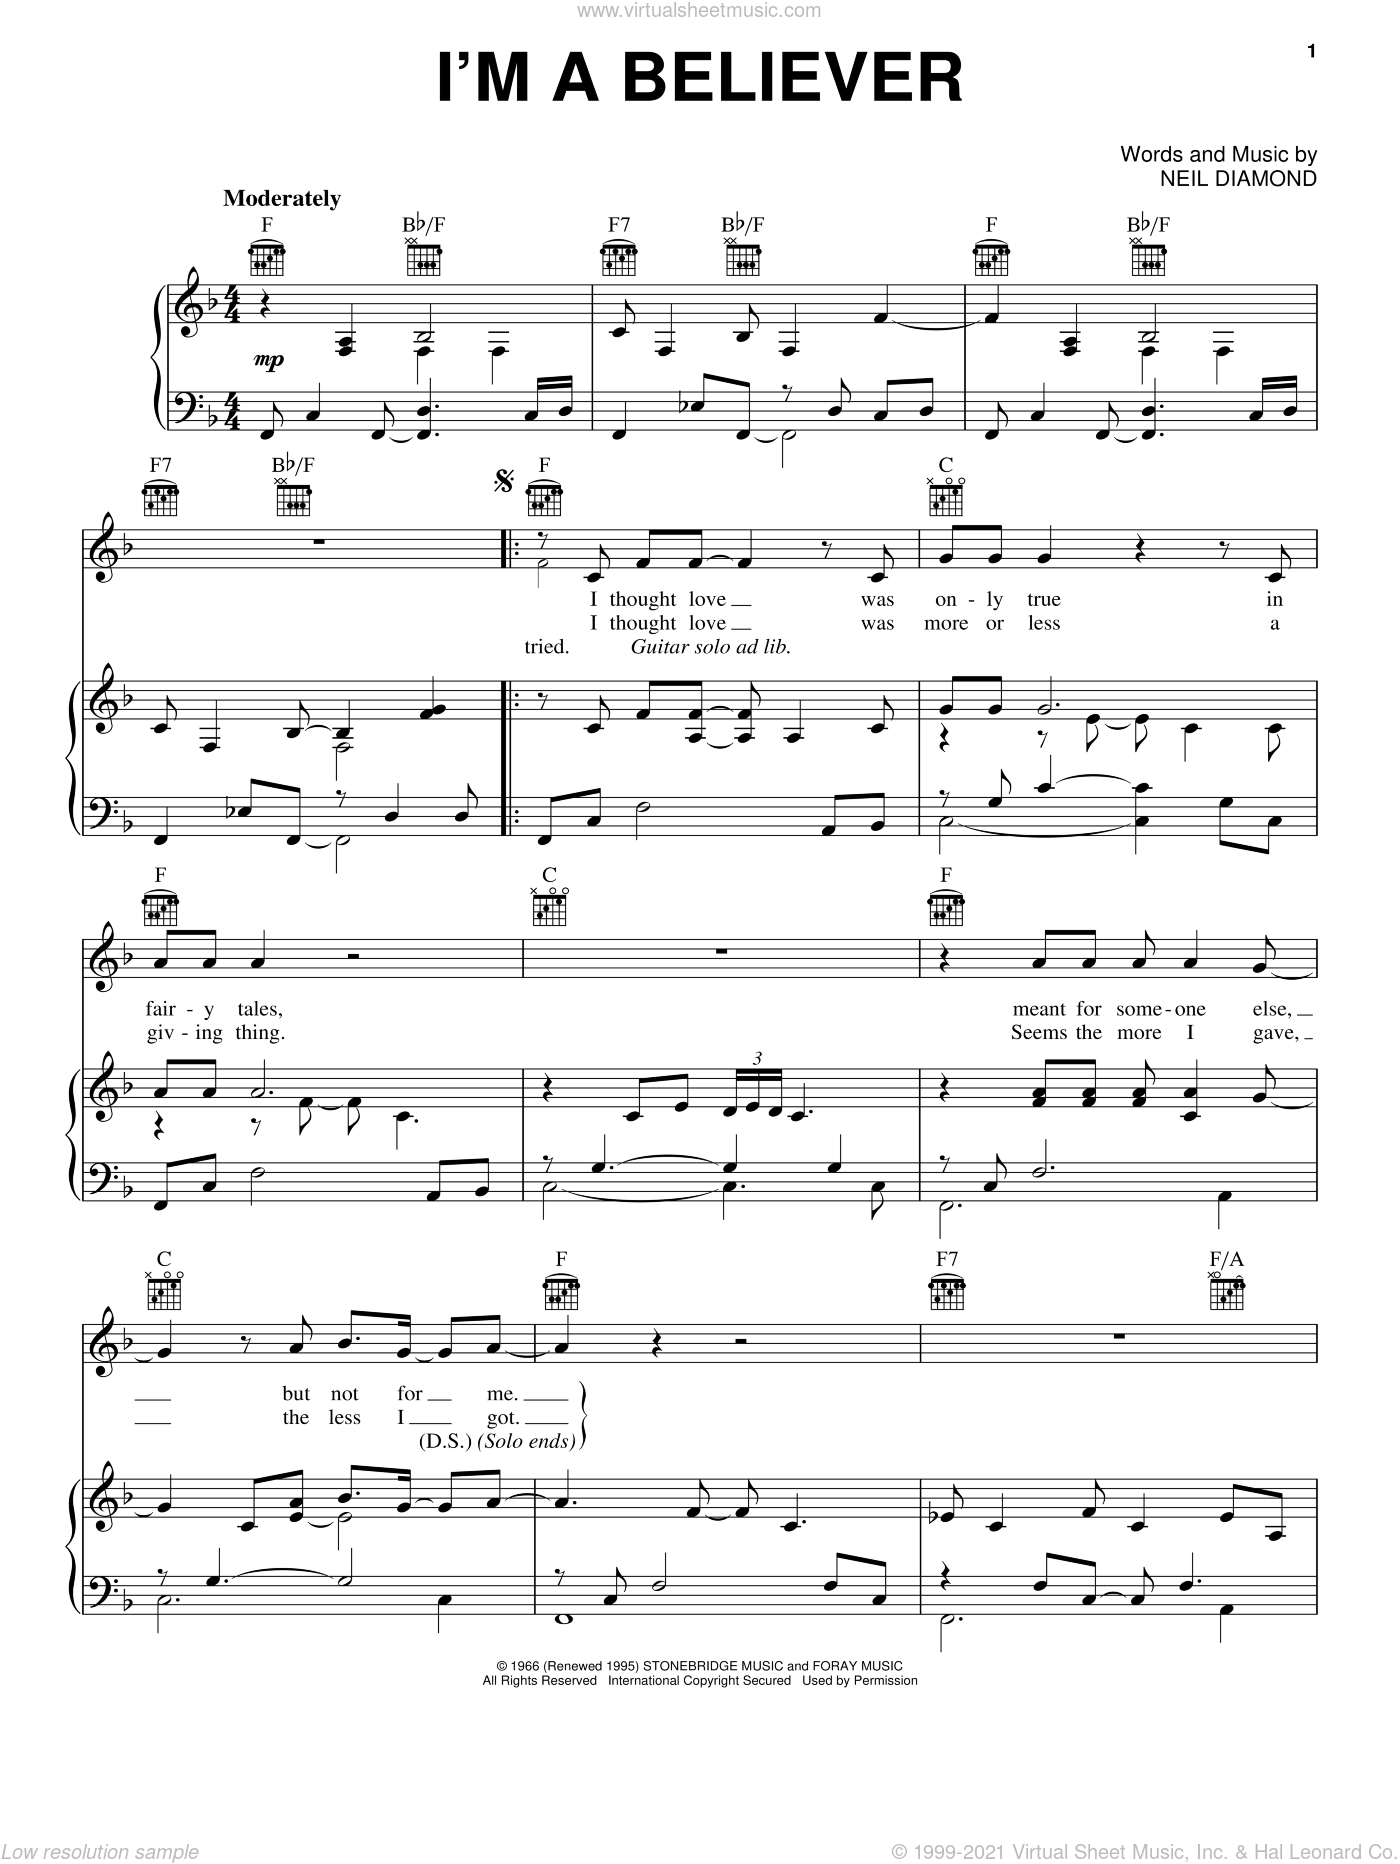 I'm A Believer sheet music for voice, piano or guitar by Neil Diamond, intermediate skill level